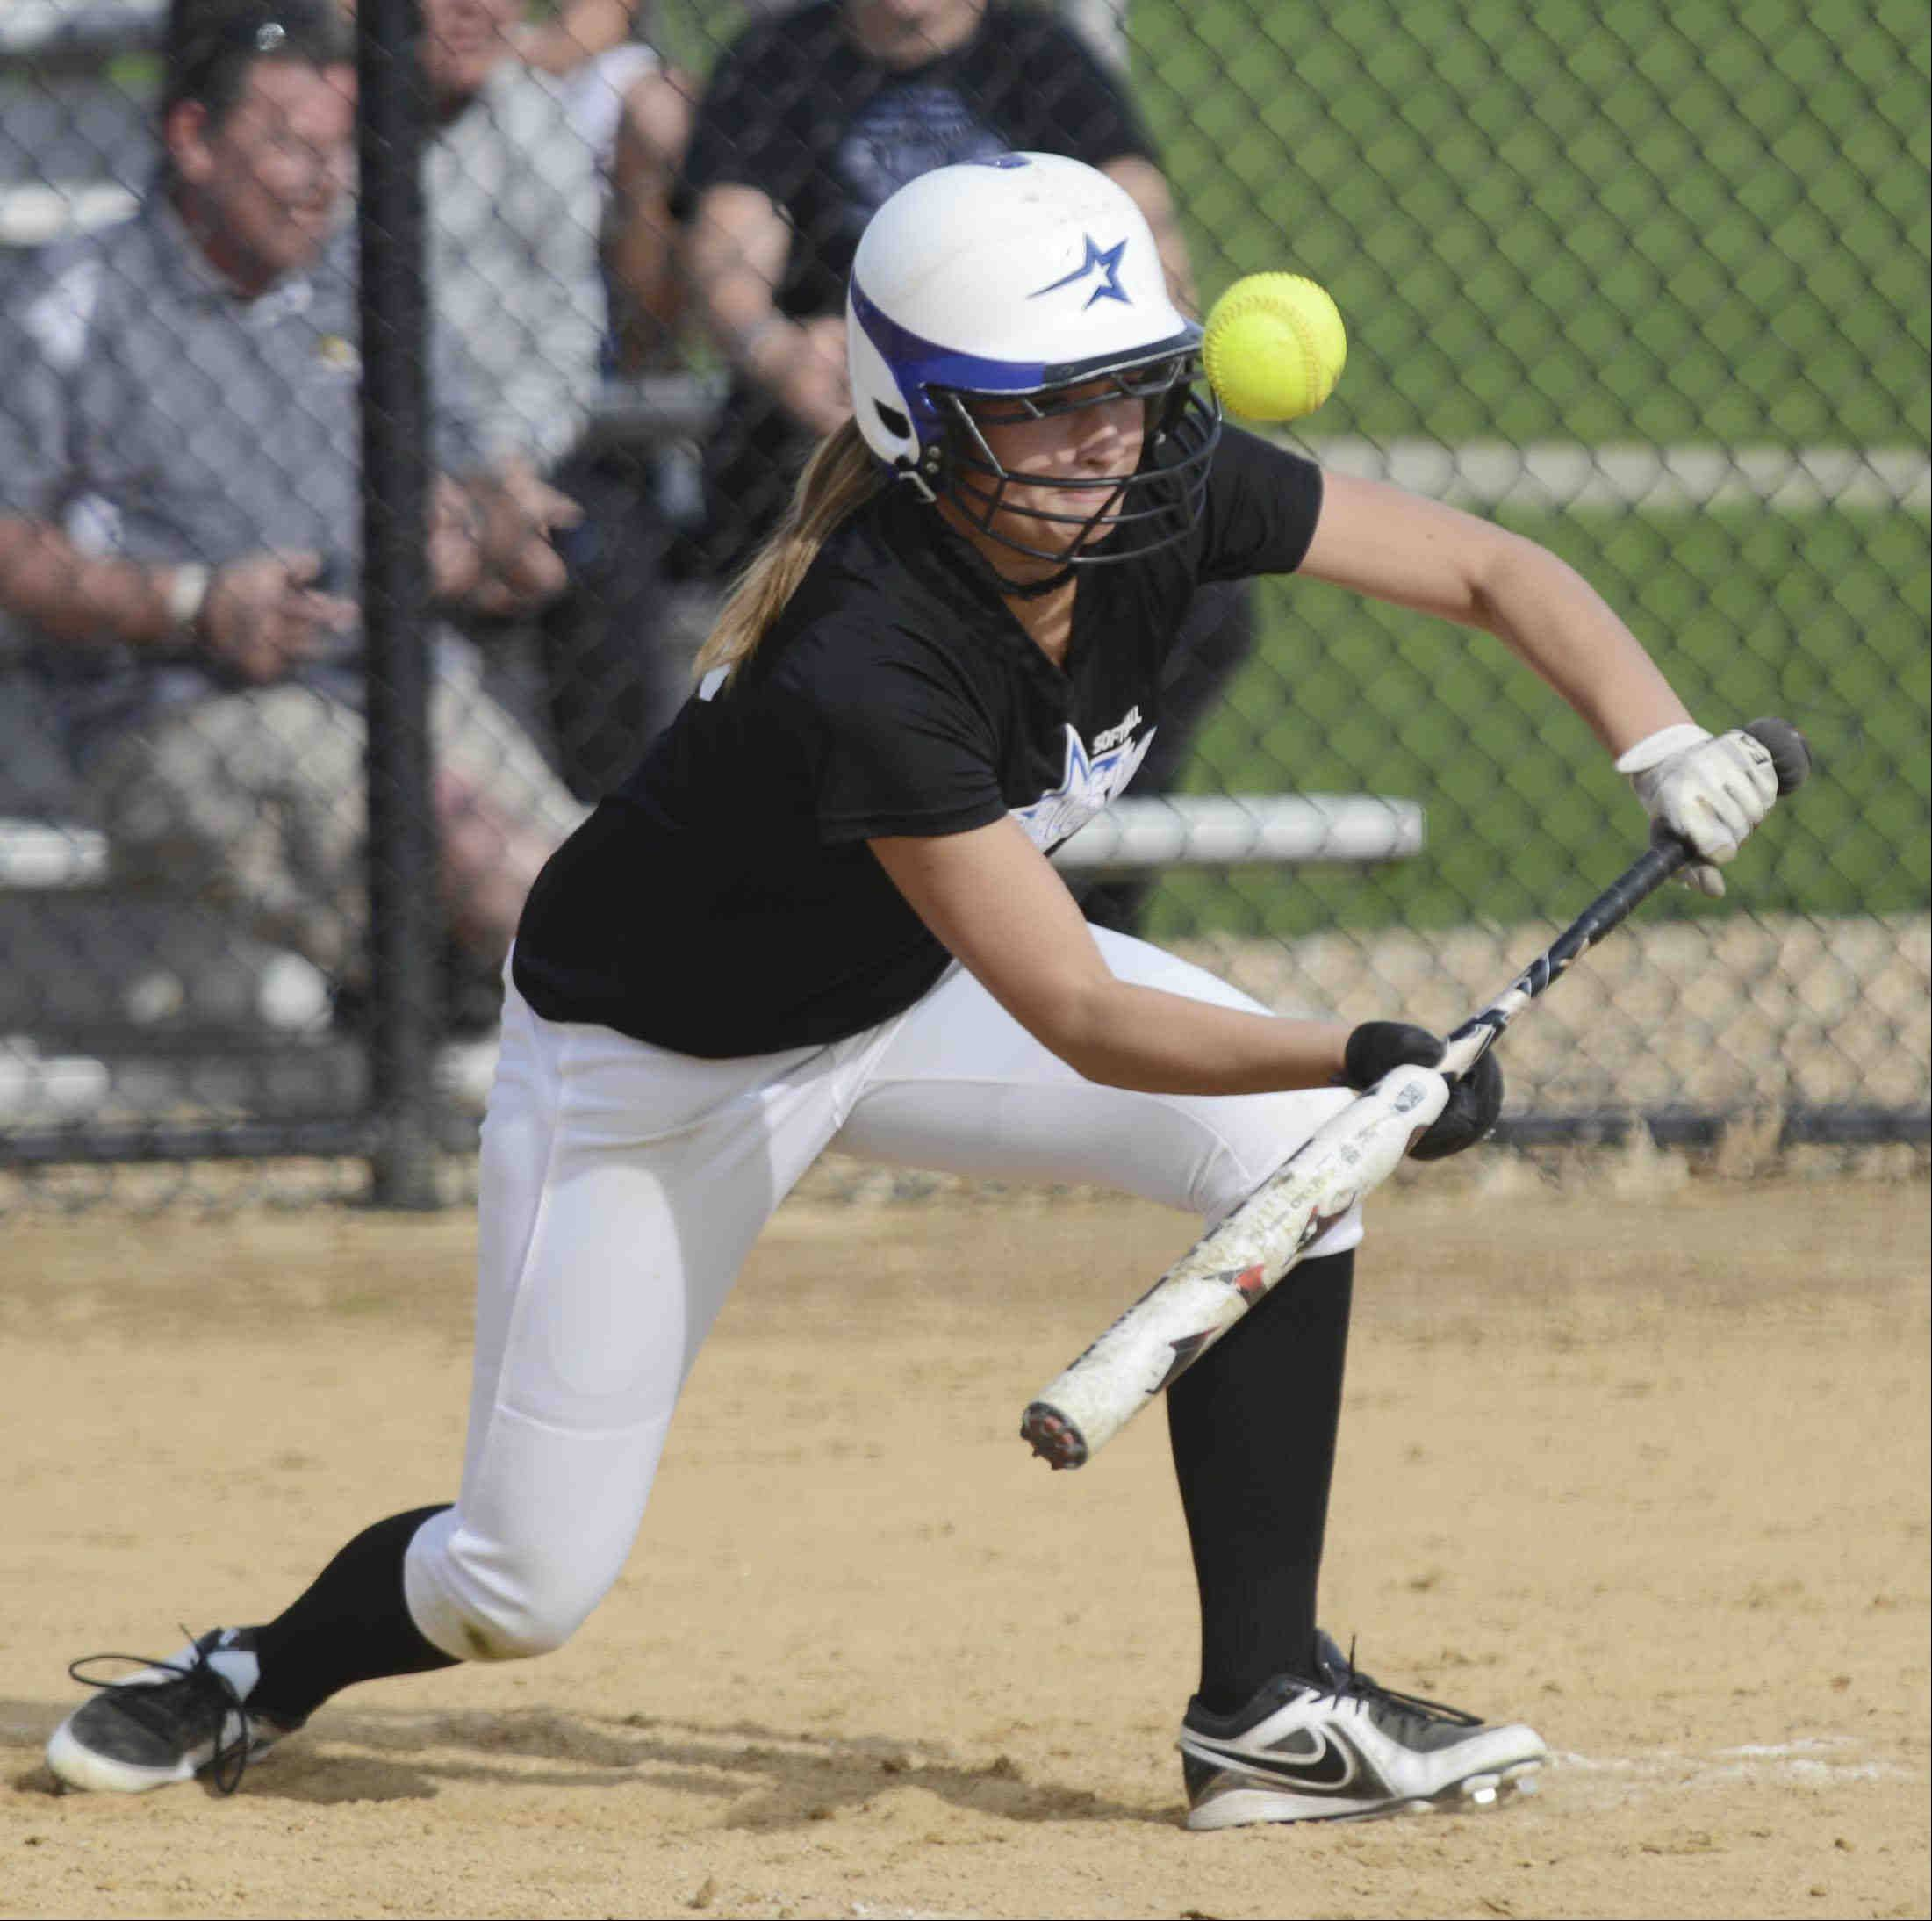 St. Charles North batter Delaney Olinger bunts foul against St. Charles East Monday.